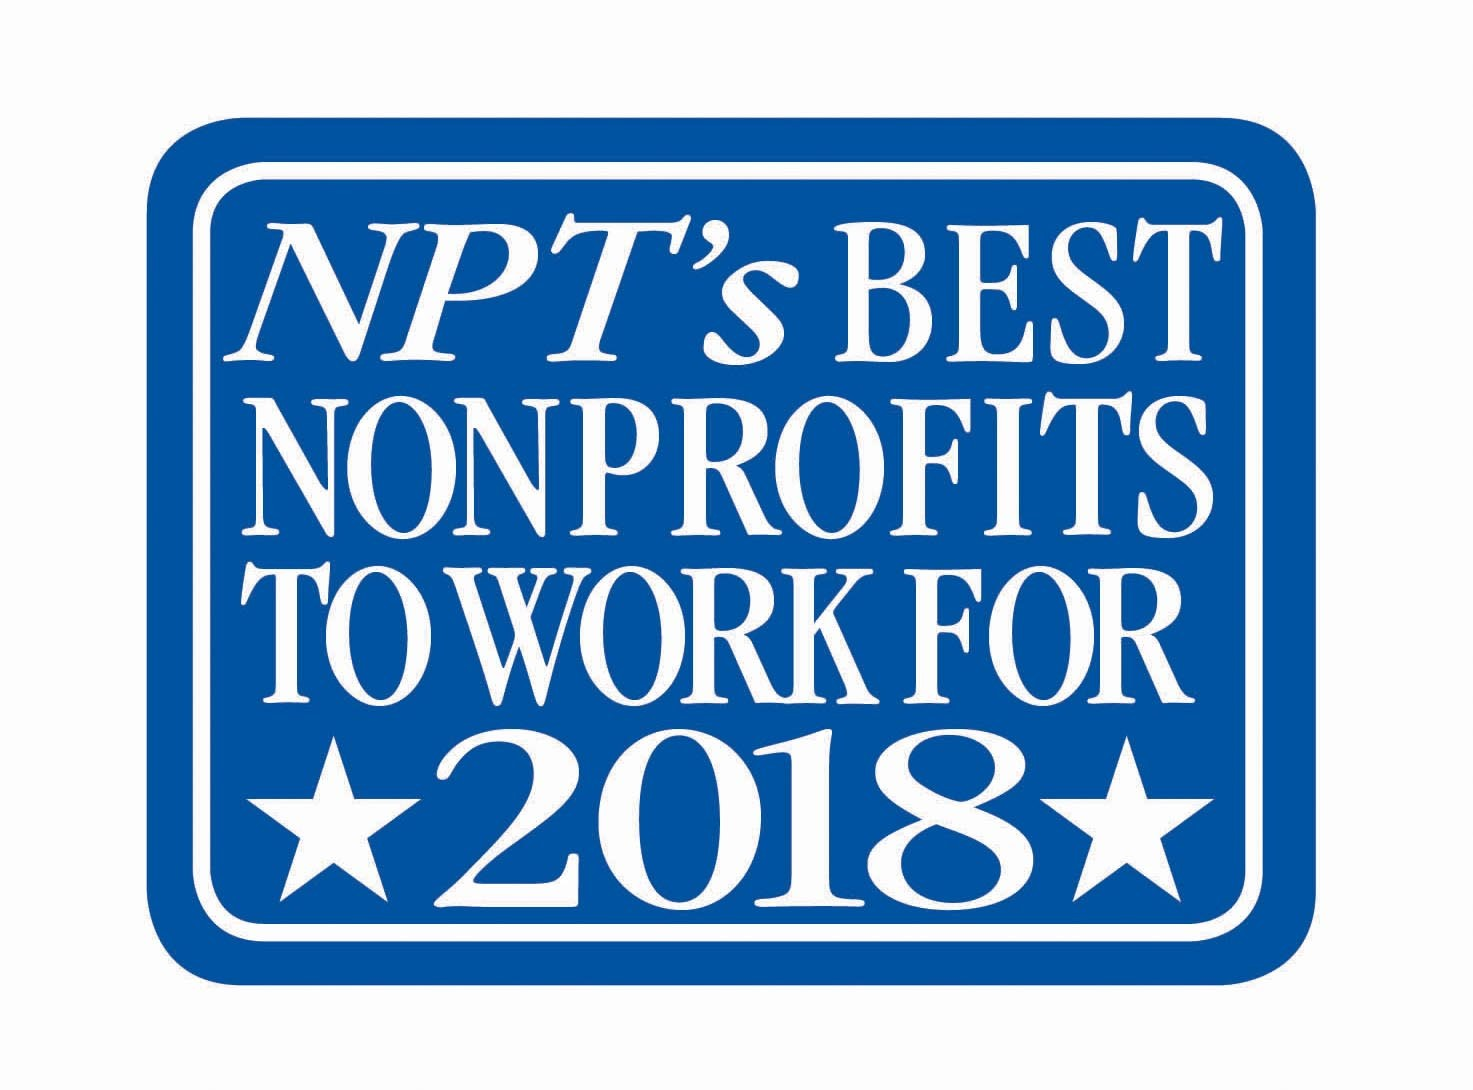 Career Path Services ranks as the #12 top Non Profit to work for in the US